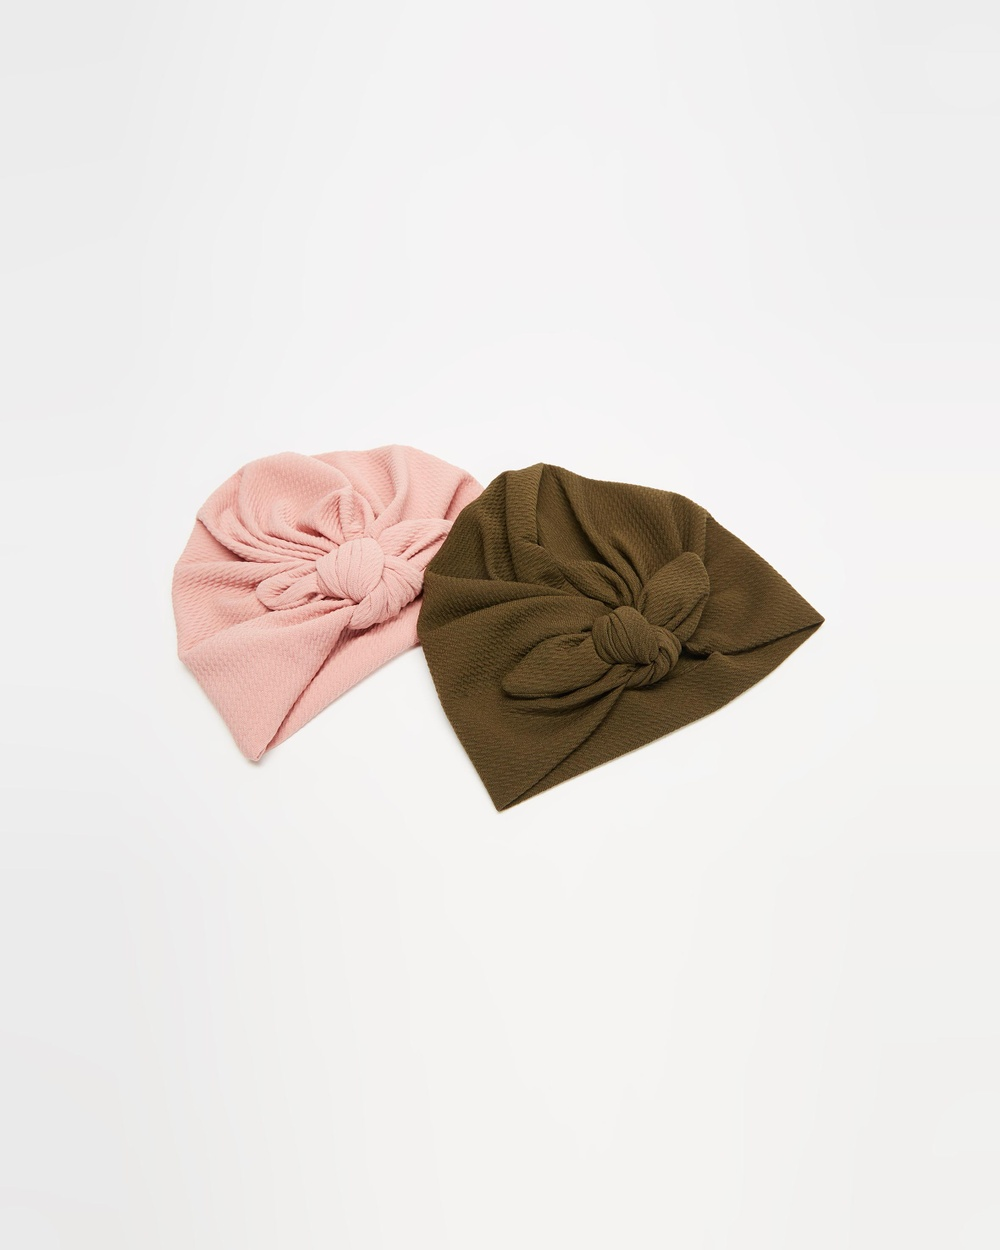 ArchNOllie Ripple Bow Turban 2 Pack Babies Hair Accessories Olive & Blush 2-Pack